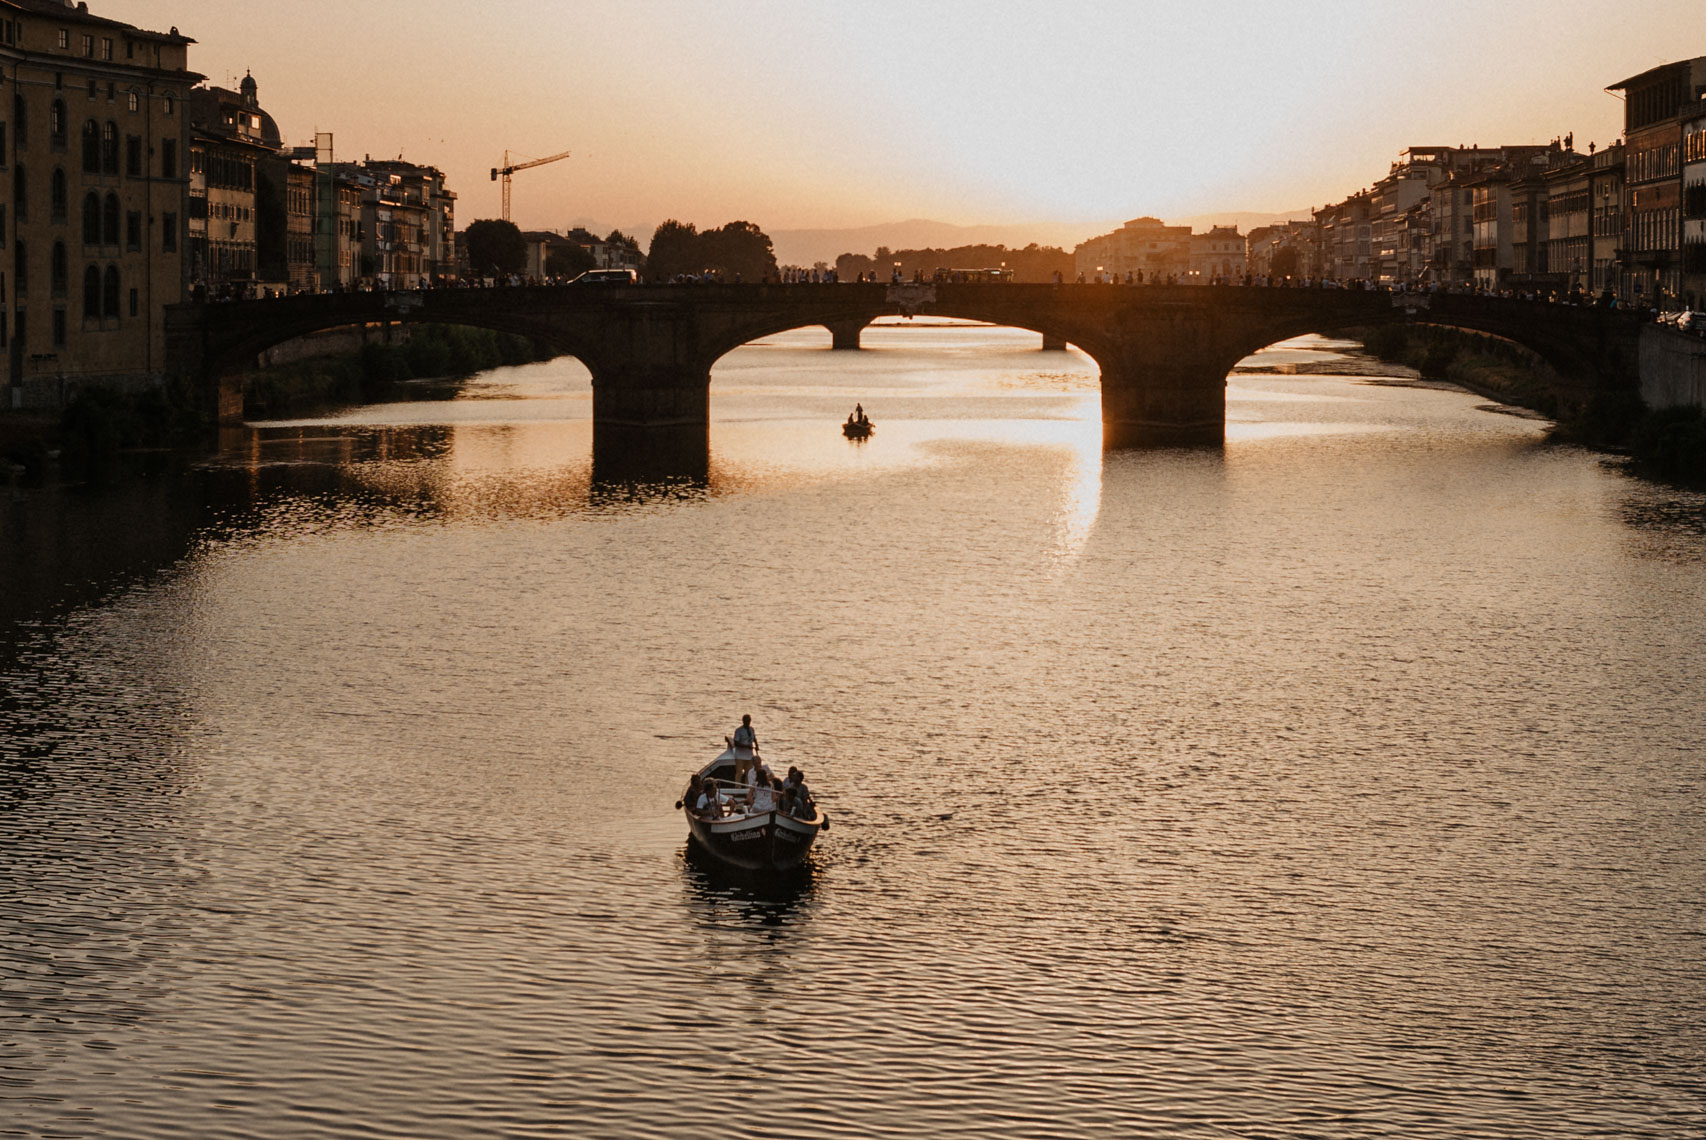 richard-schabetsberger-florenz-010